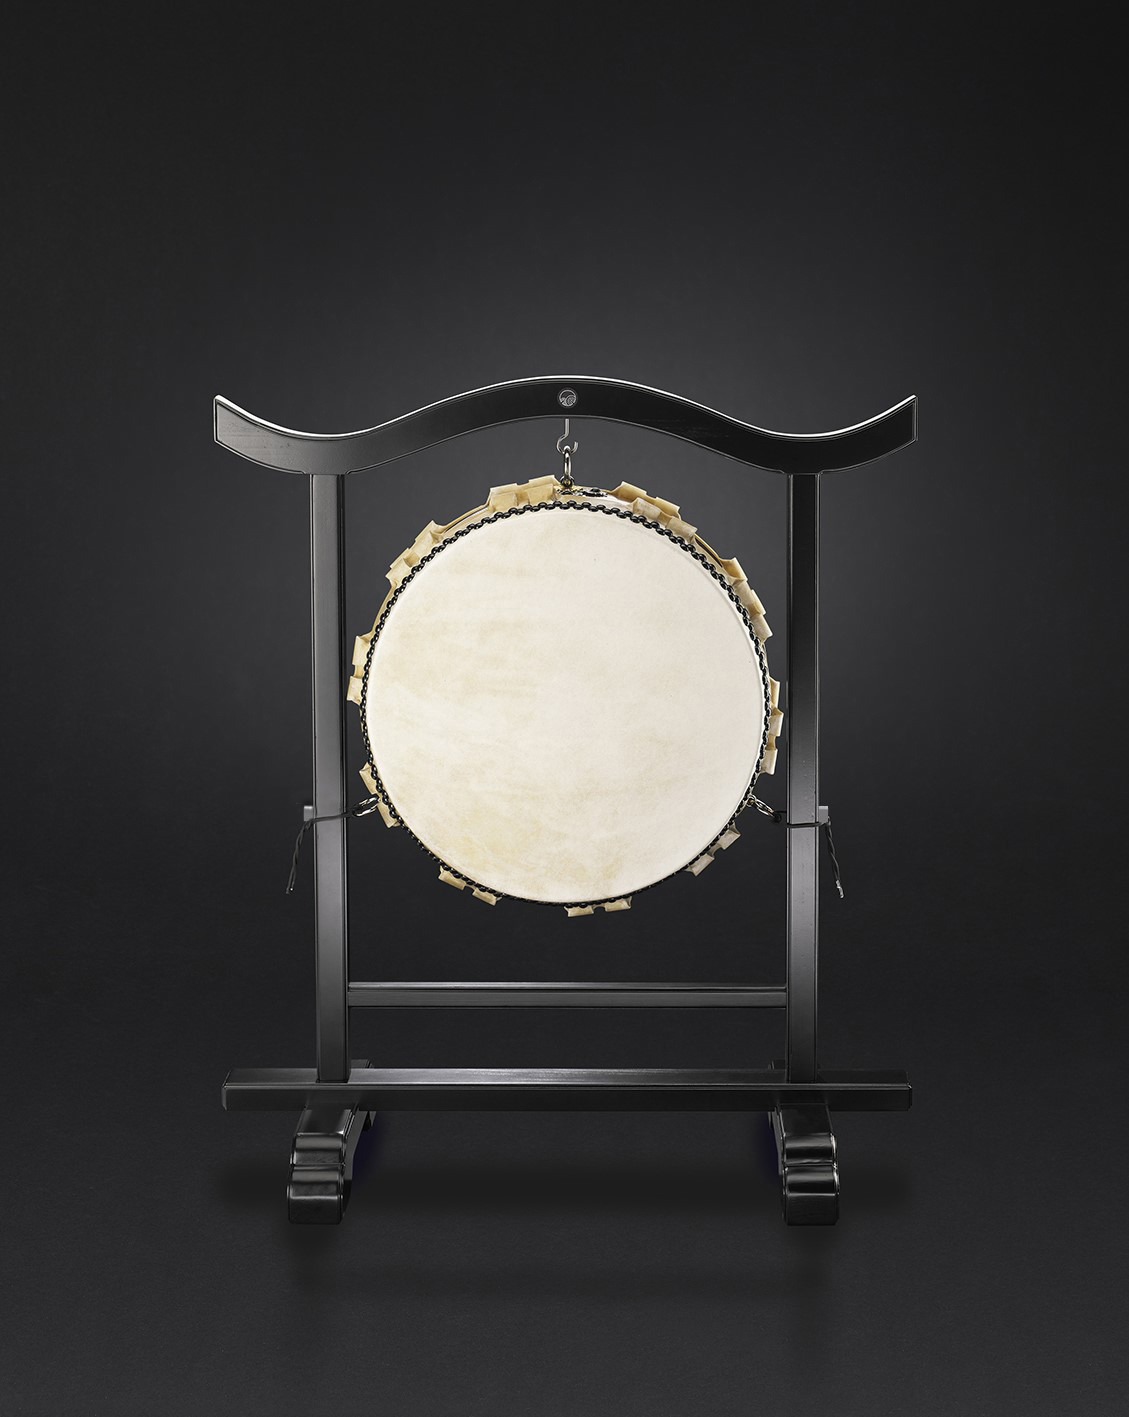 Hira-Daiko temple stand for Ø48cm/h20cm  (280€)